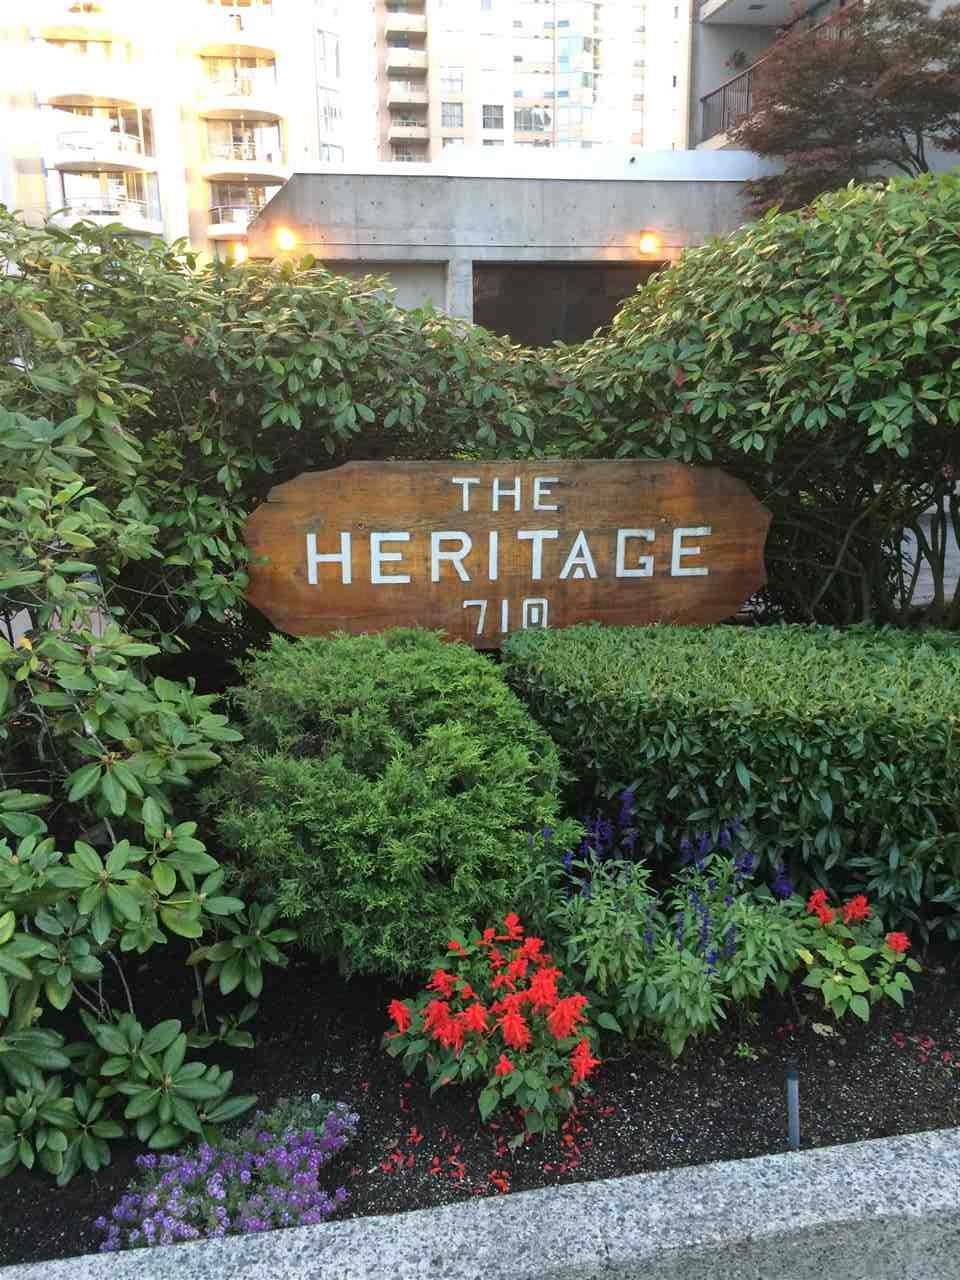 "Photo 19: 305 710 SEVENTH Avenue in New Westminster: Uptown NW Condo for sale in ""THE HERITAGE"" : MLS(r) # R2116270"